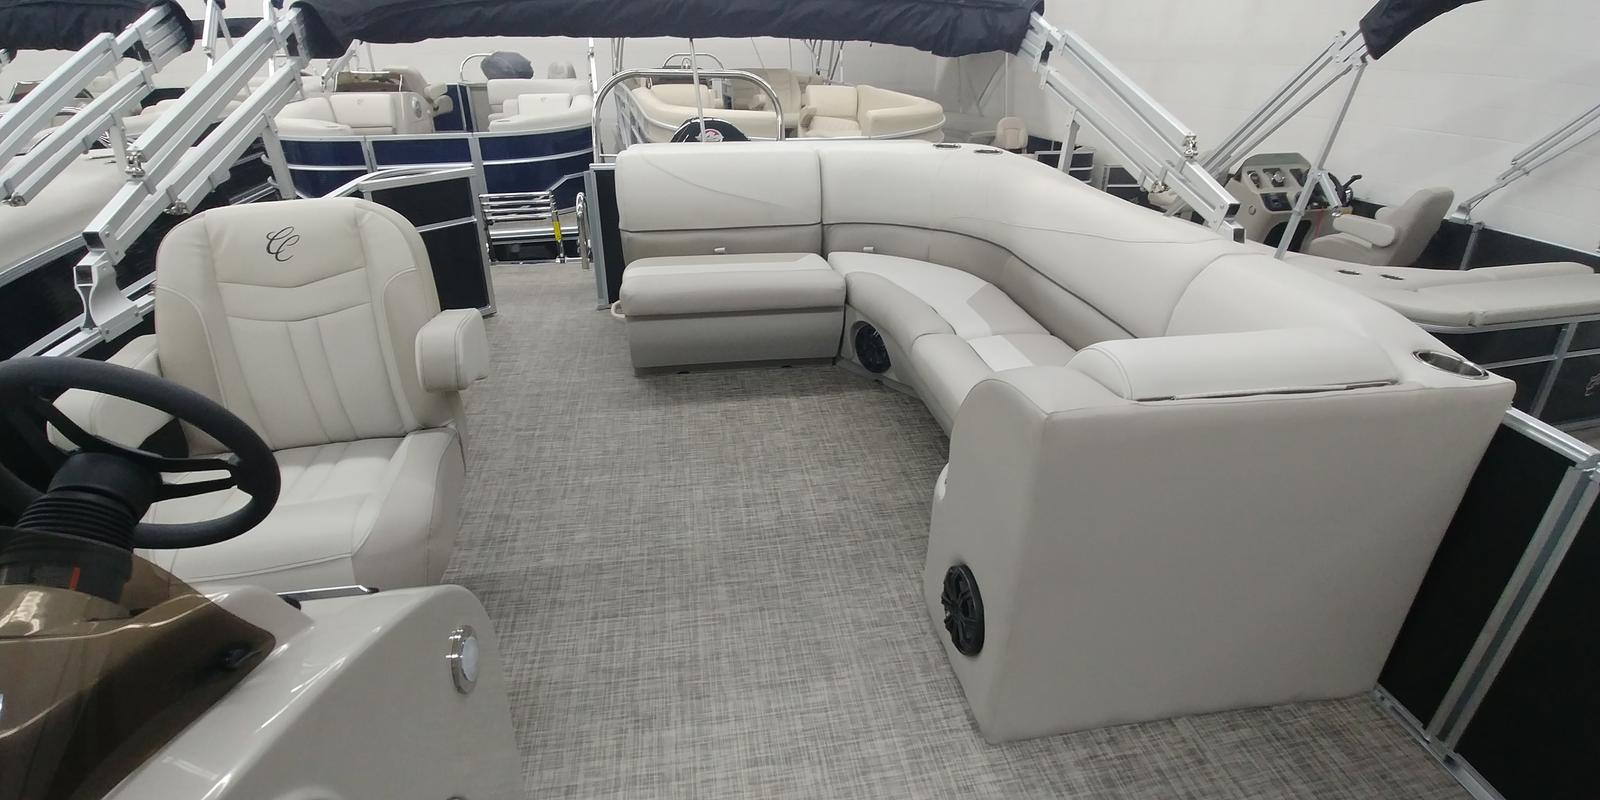 2019 Cypress Cay boat for sale, model of the boat is 212 Seabreeze CS & Image # 3 of 5